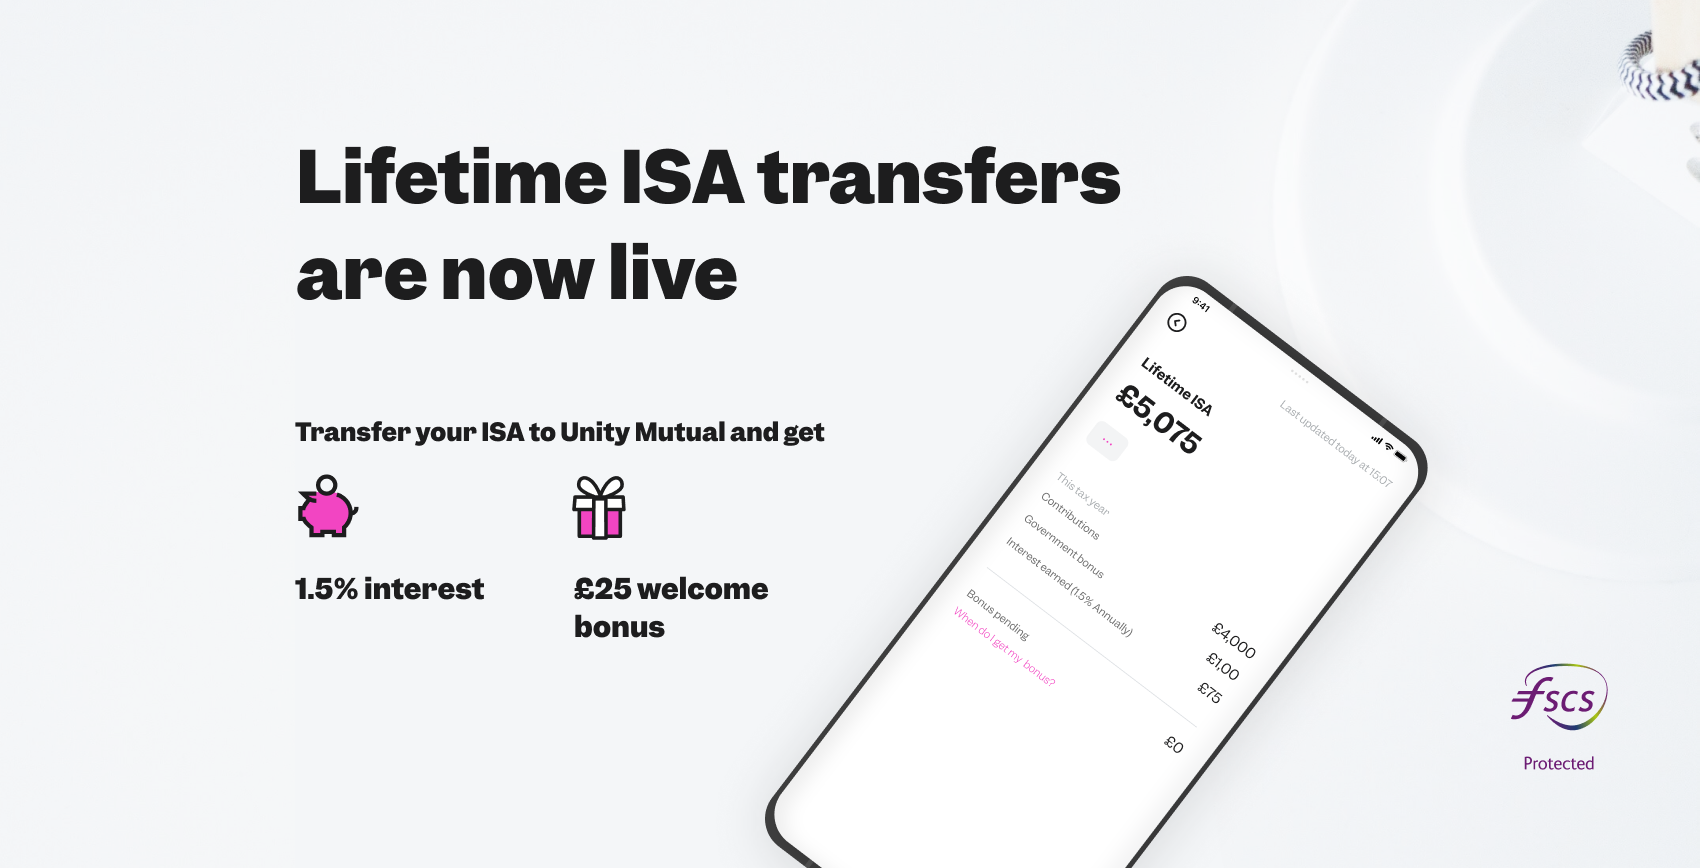 Lifetime ISA transfers are live